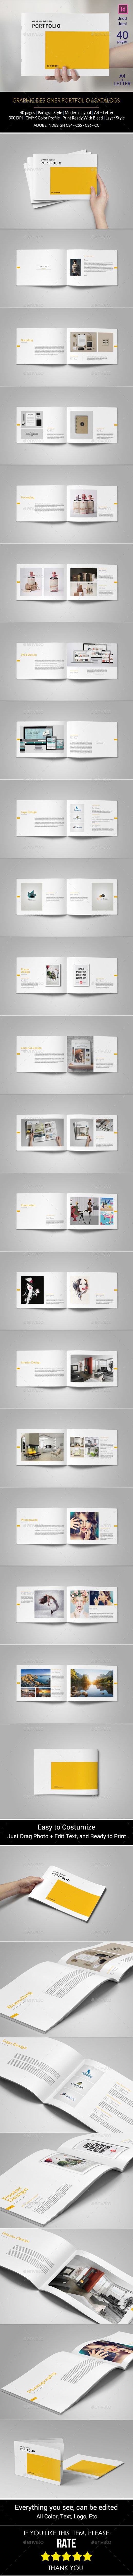 Portfolio Brochure Template #design Download: http://graphicriver.net/item/portfolio-template/13031098?ref=ksioks